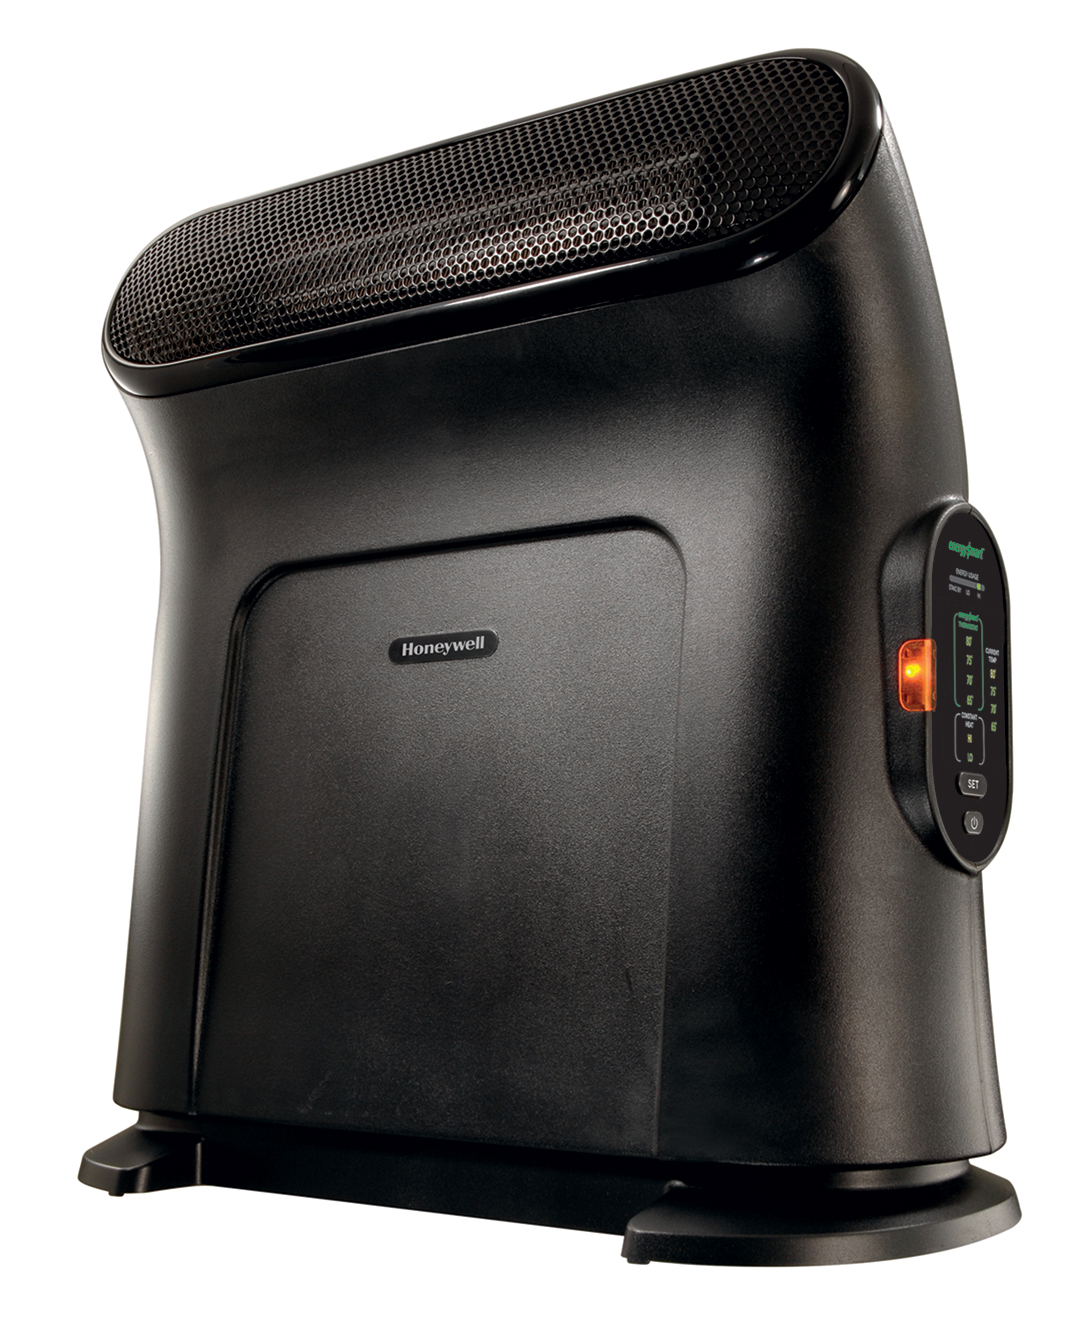 Honeywell Thermawave Electric Heater (Black)